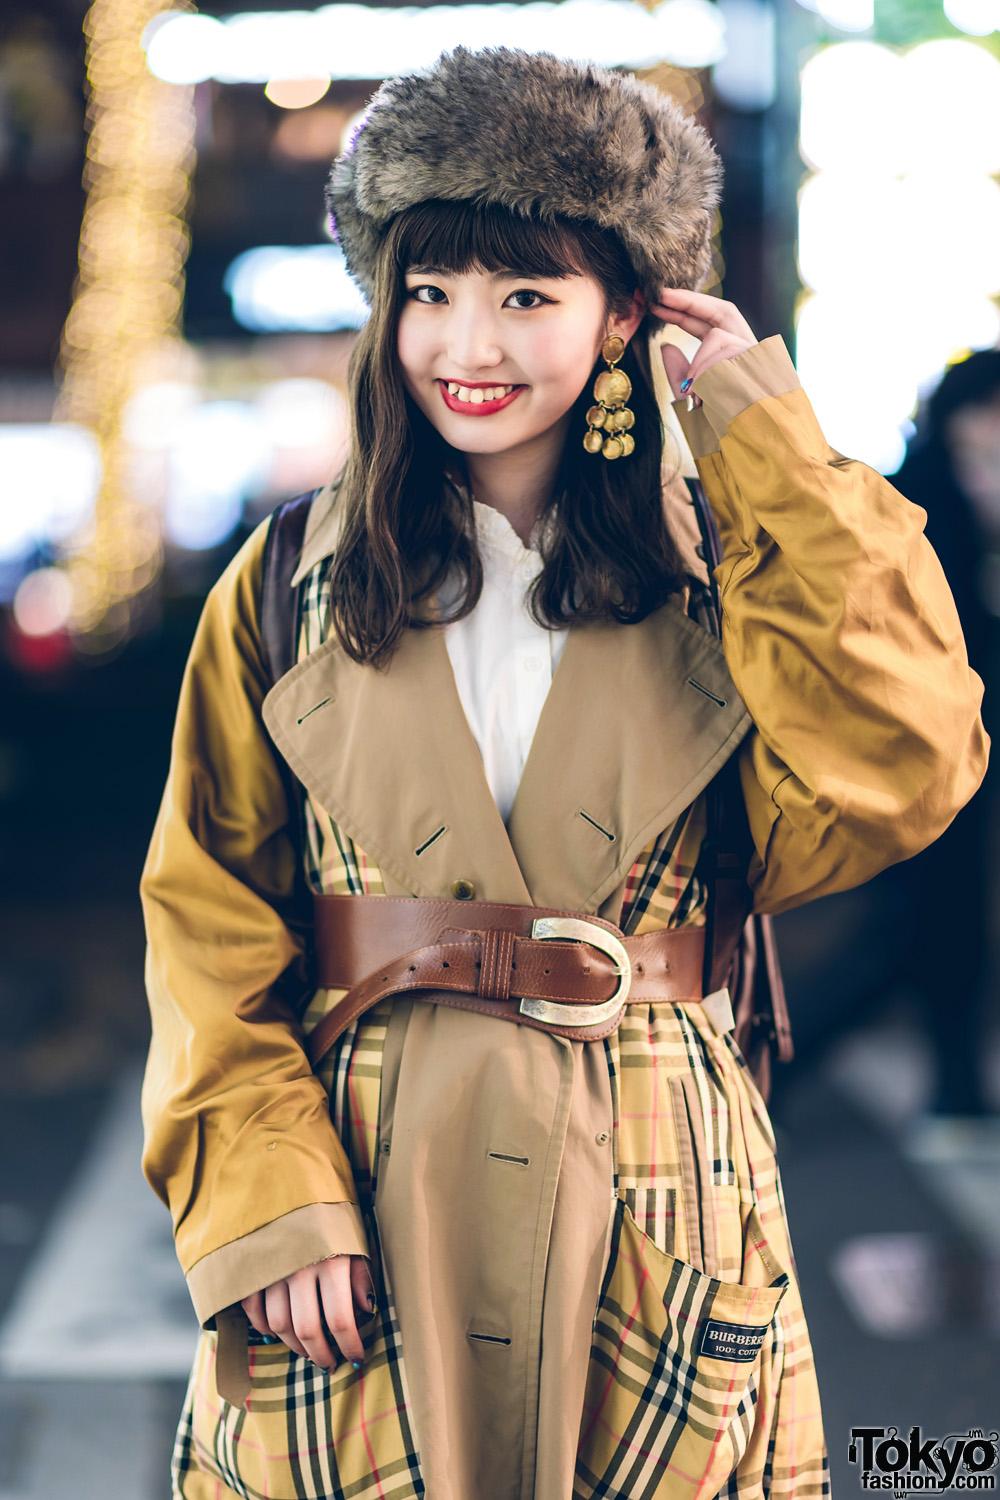 Harajuku Girl in Retro Style w/ Furry Hat, RRR Vintage Burberry Plaid Coat, Leather Backpack, MICMO & Shimokita Market